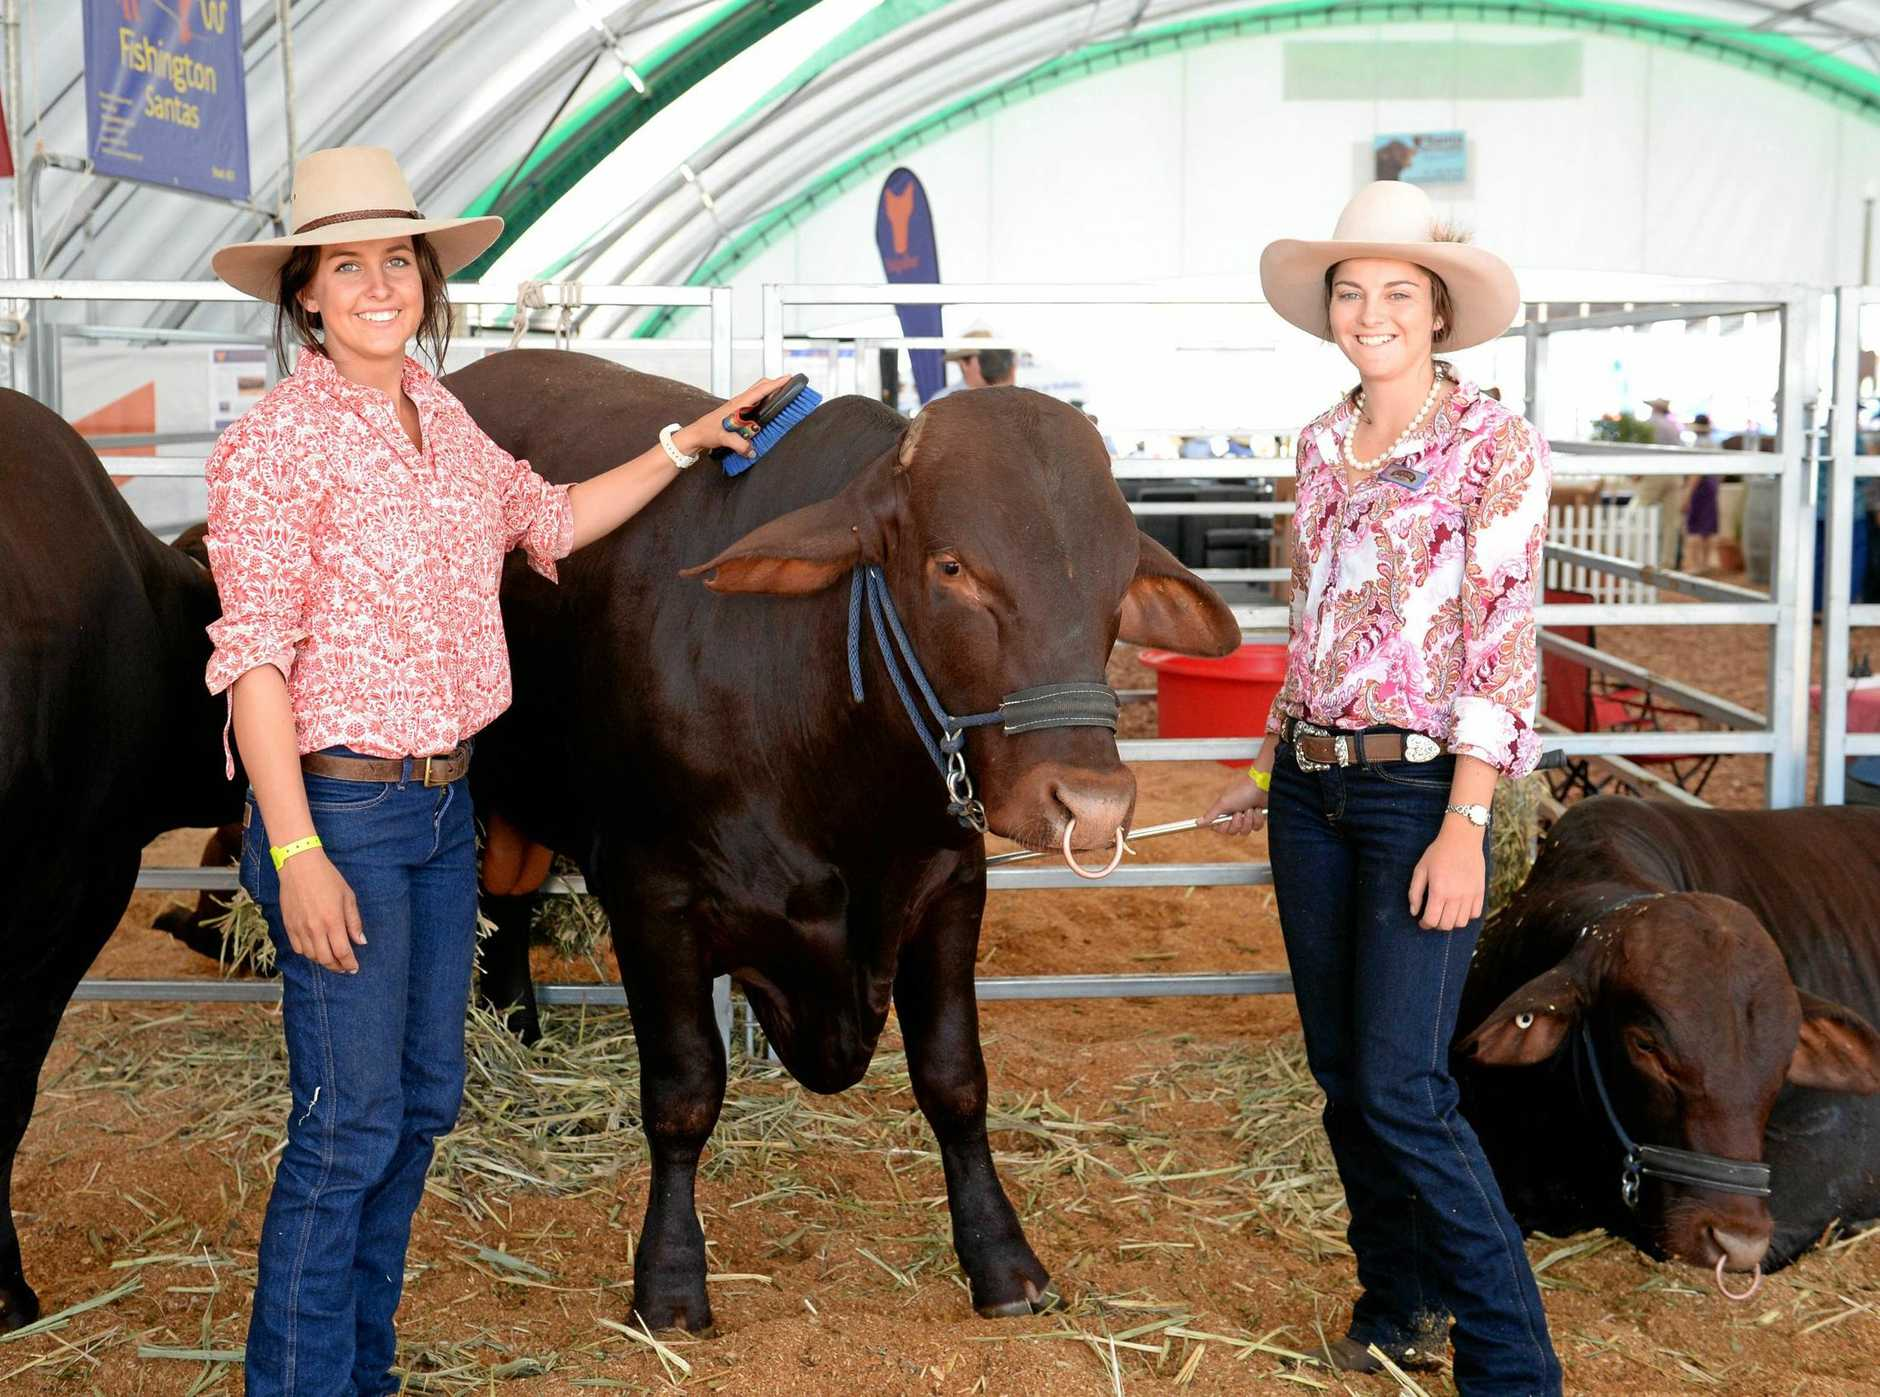 FUN TIMES: Molly Kruger and Maddy Page at Beef Week 2015.